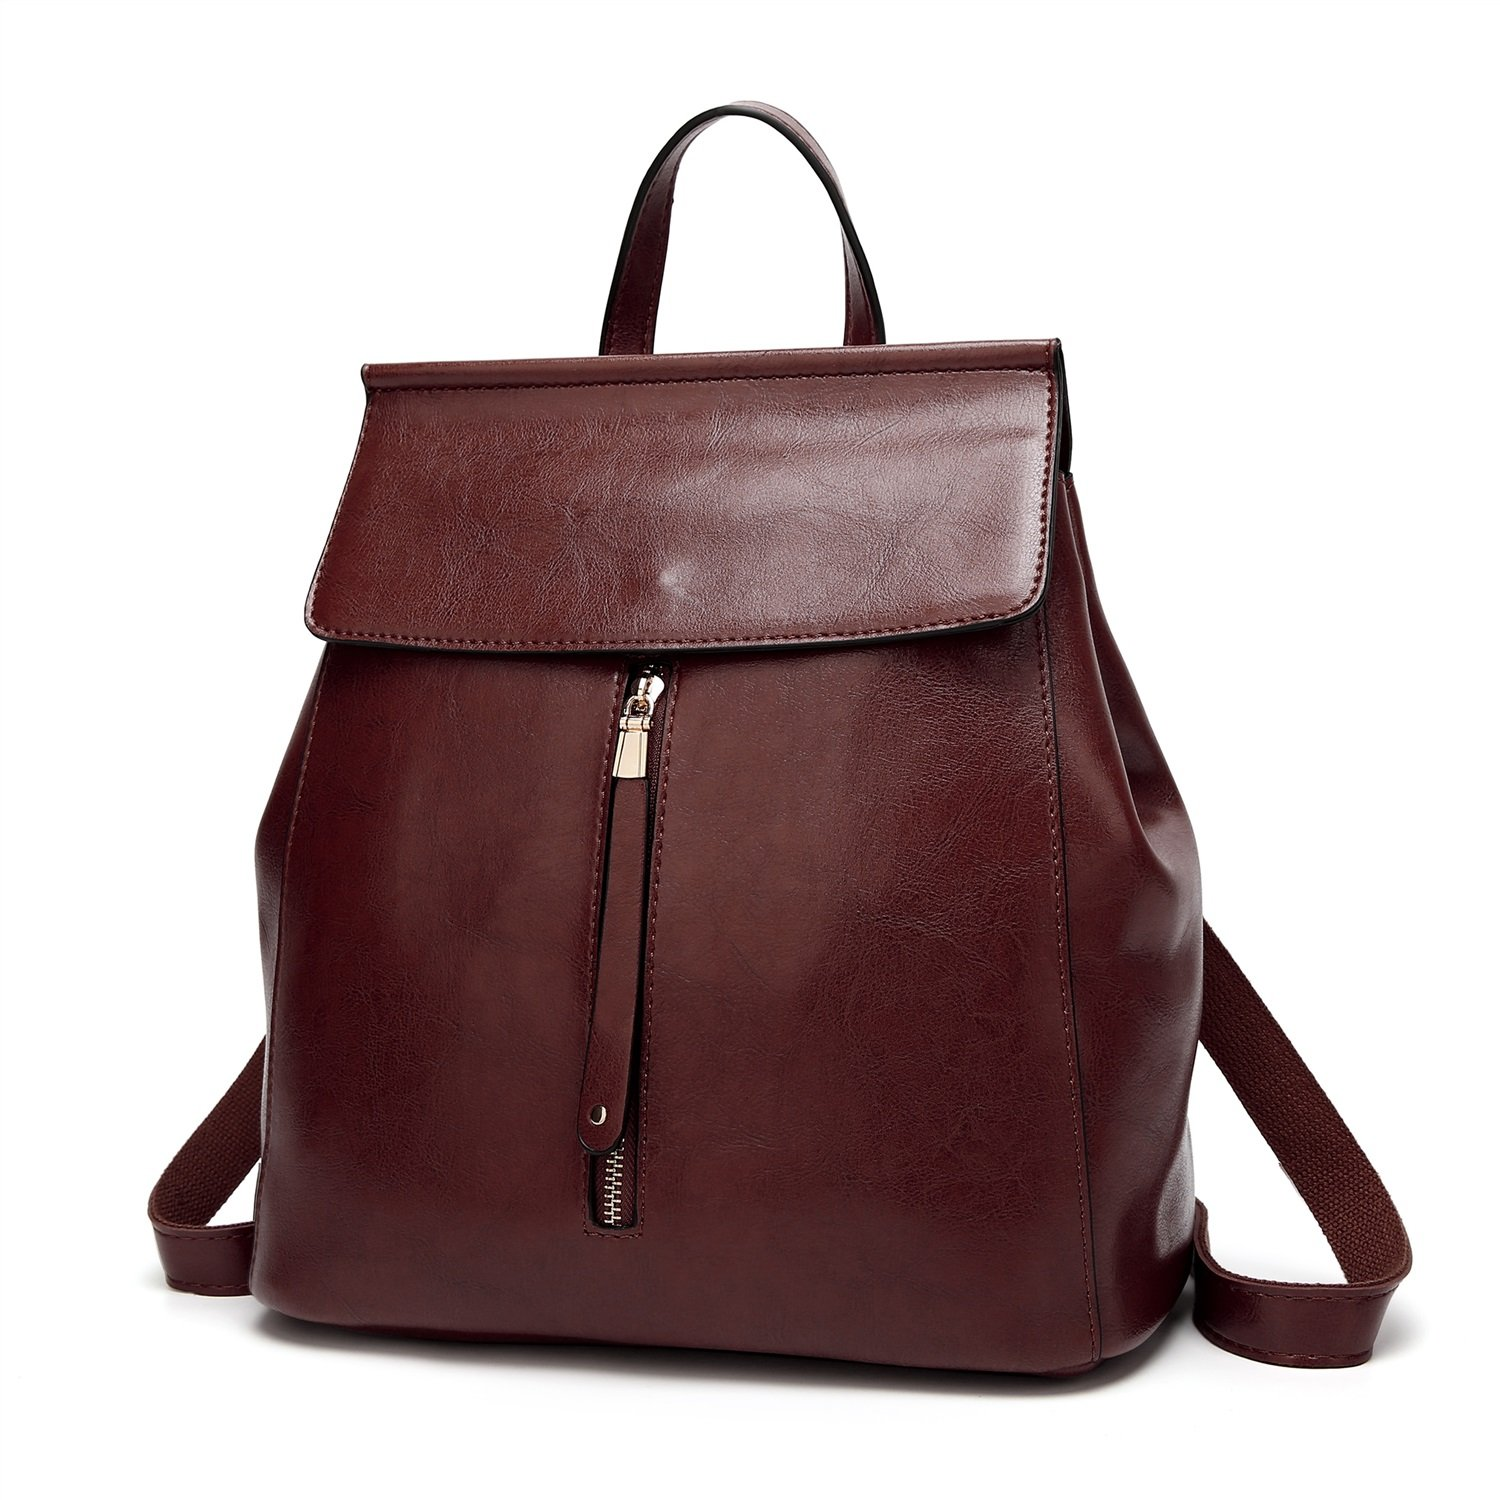 Elegdy Womens Backpack Casual Womens Bag Simple Fashion PU Leather Retro Backpack Fashion Color : Gray, Size : M